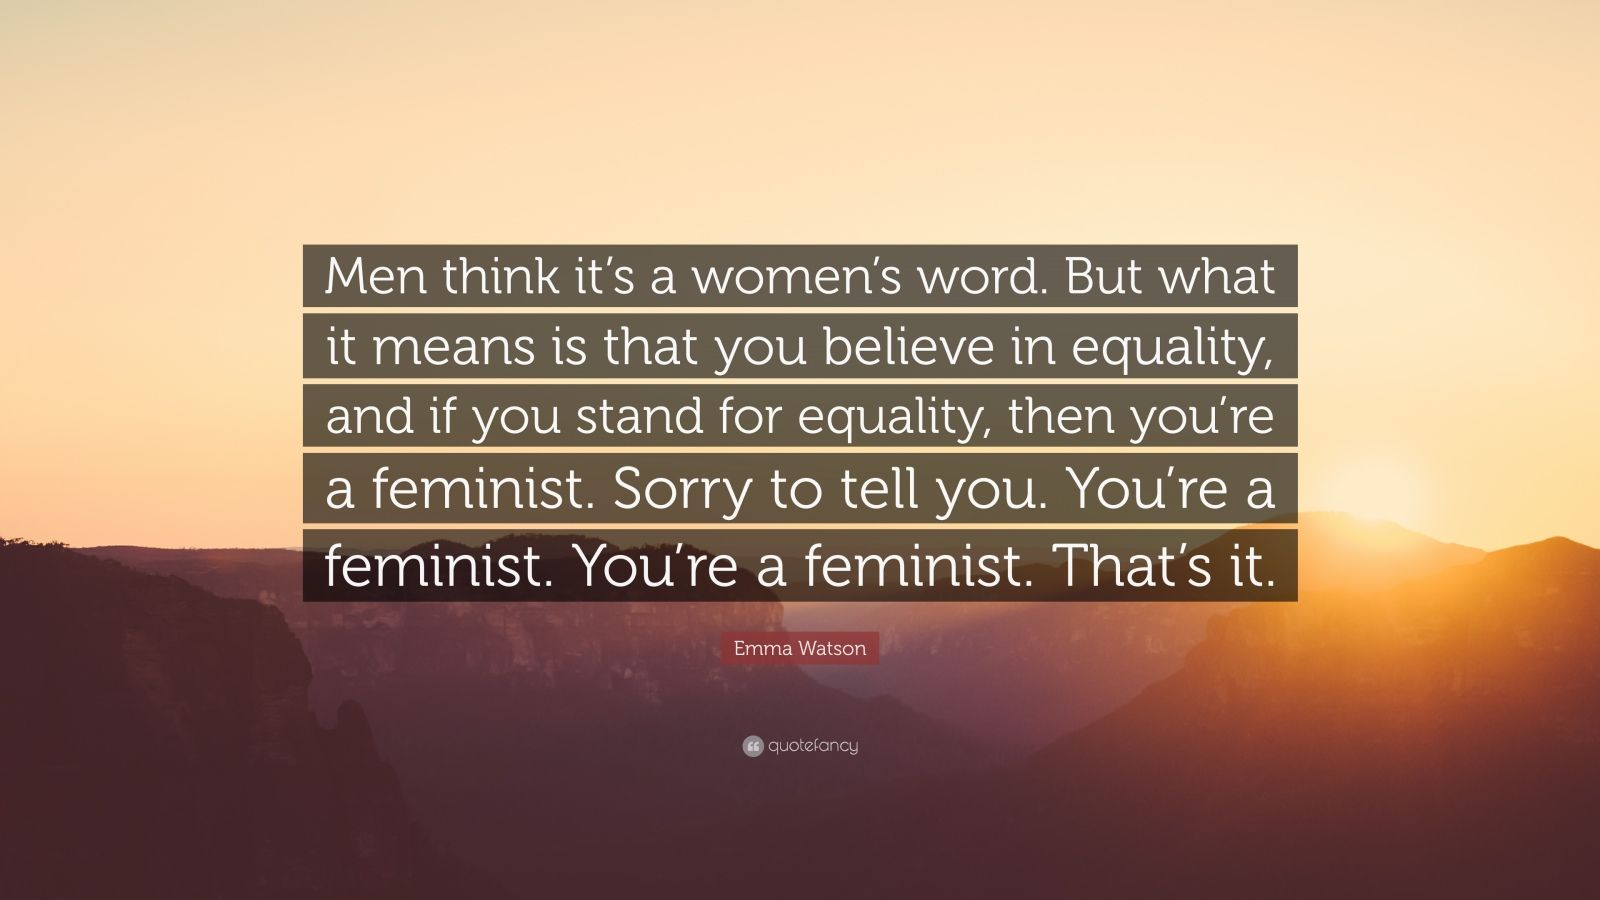 "Emma Watson Quote: ""Men think it's a women's word. But what it means is that you believe in equality, and if you stand for equality, then you're a feminist. Sorry to tell you. You're a feminist. You're a feminist. That's it."""